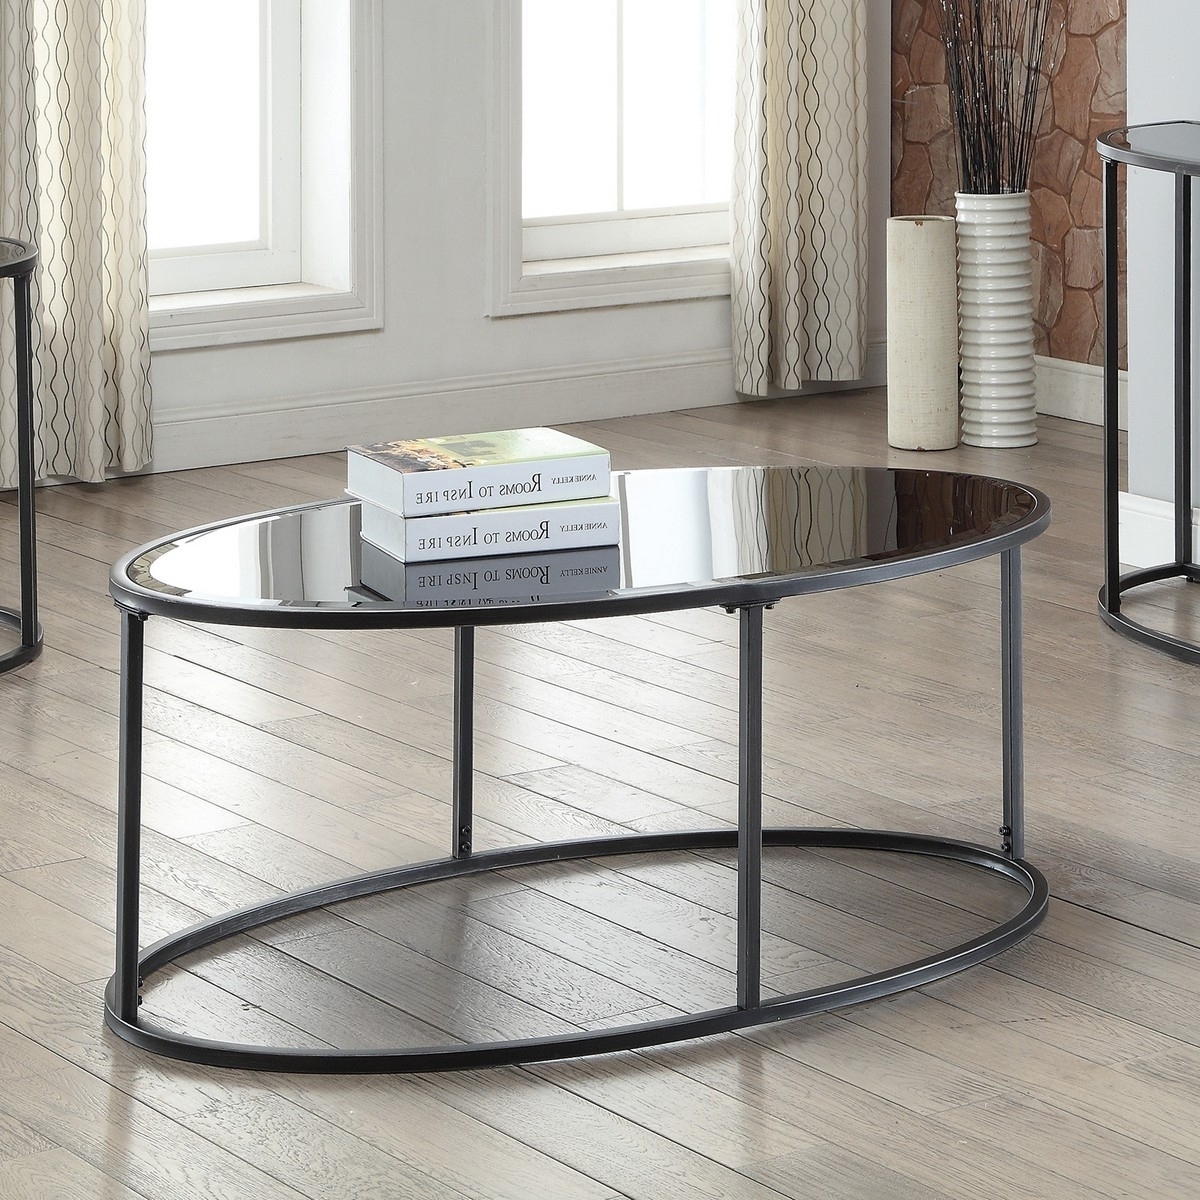 Coaster 704398 Coffee/cocktail Table – Gunmetal Frame 704398 At Pertaining To Widely Used Gunmetal Coffee Tables (View 5 of 20)